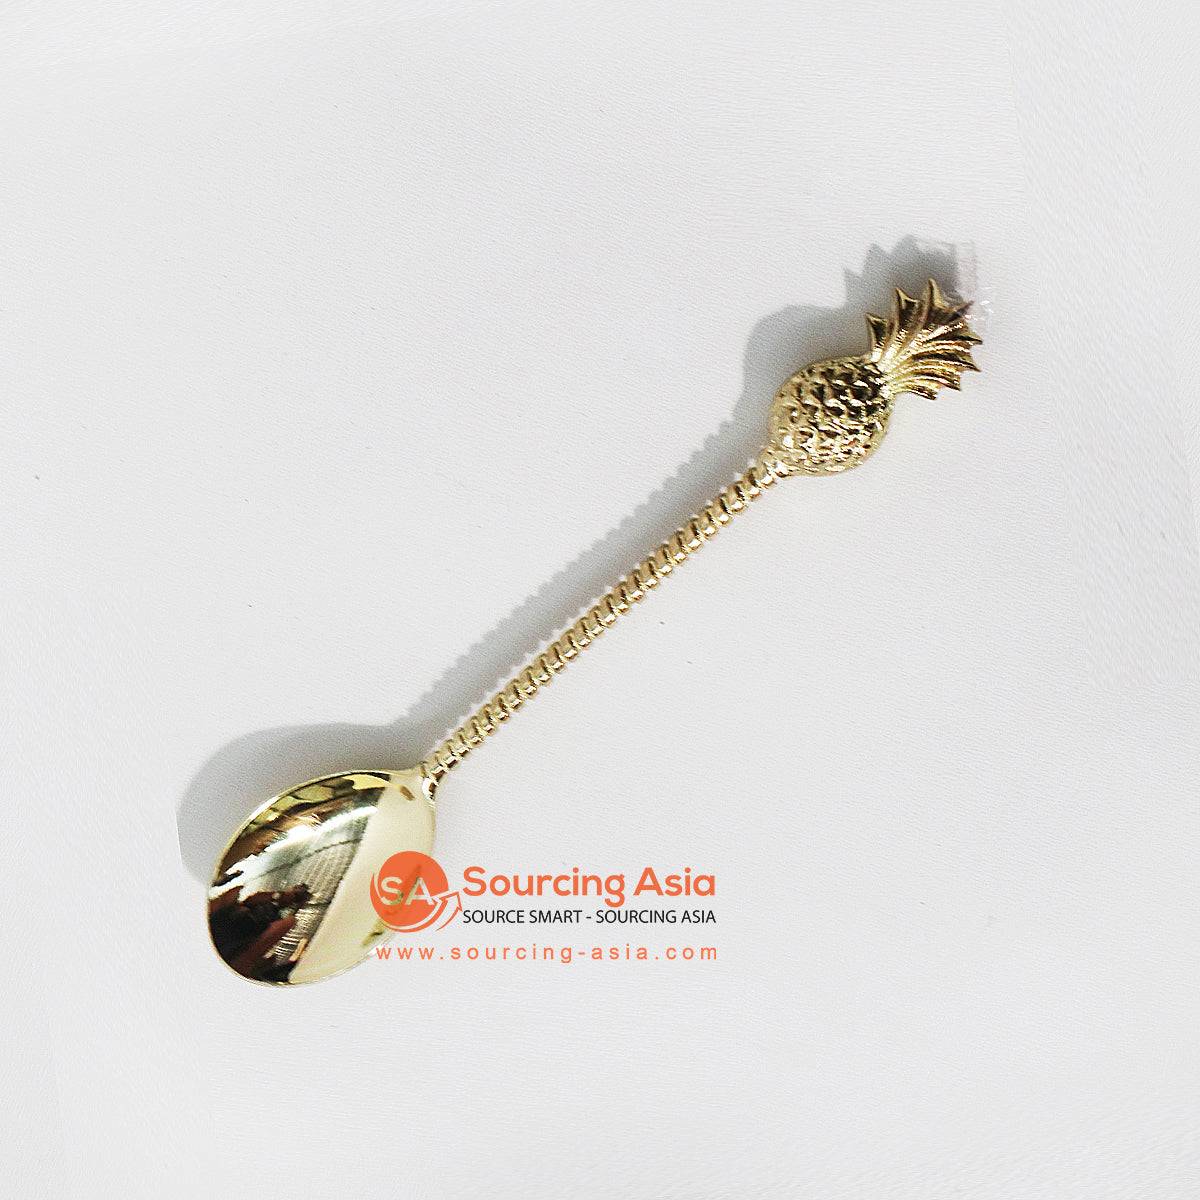 MTL001S BRONZE PINEAPPLE SPOON